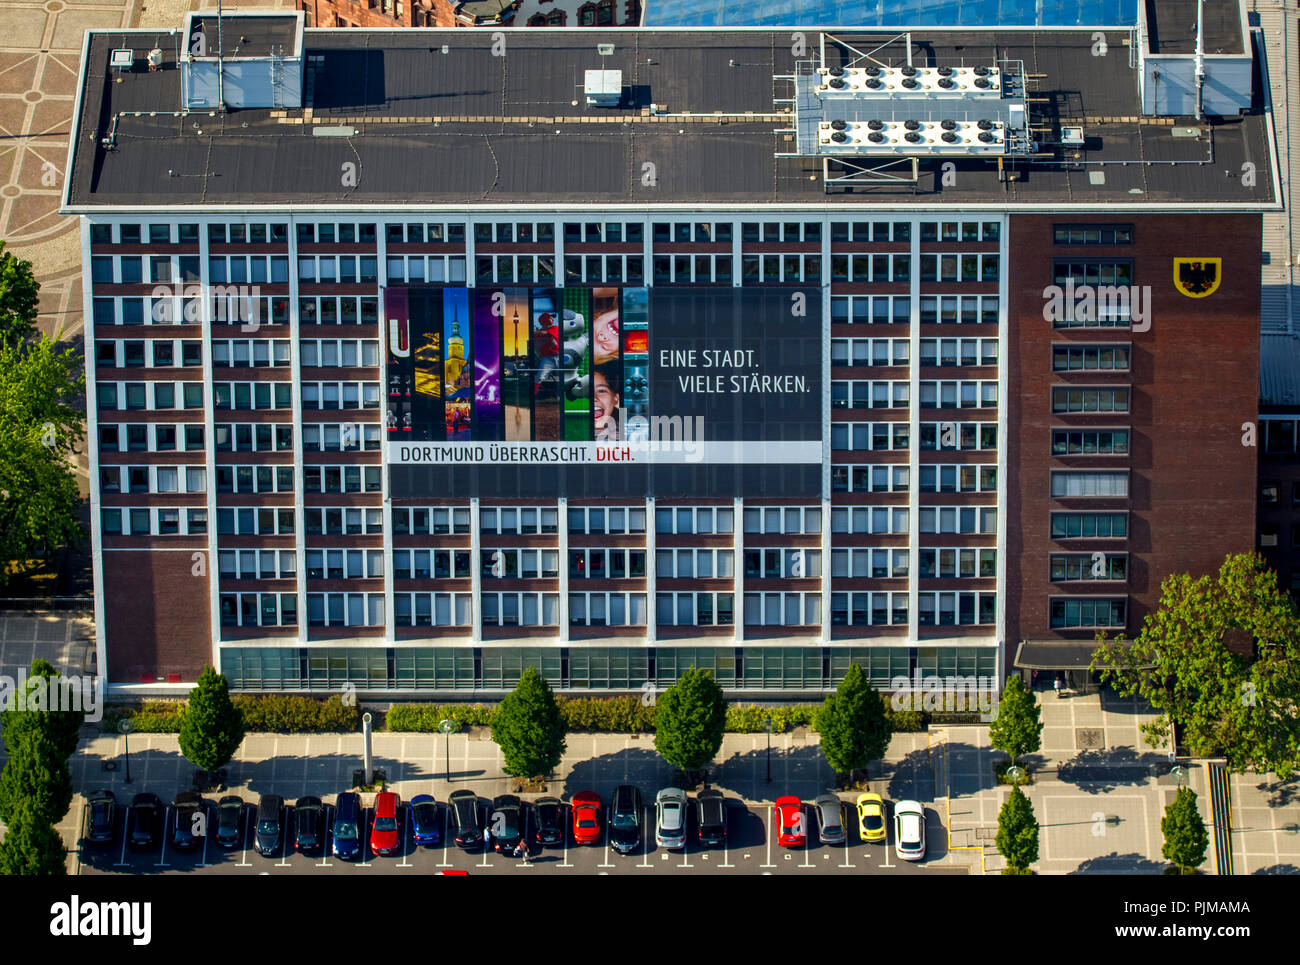 Poster 'One city - many strengths' Dortmund surprises you, city administration Office for Housing and Urban Renewal, Dortmund, Ruhr Area, North Rhine-Westphalia, Germany - Stock Image